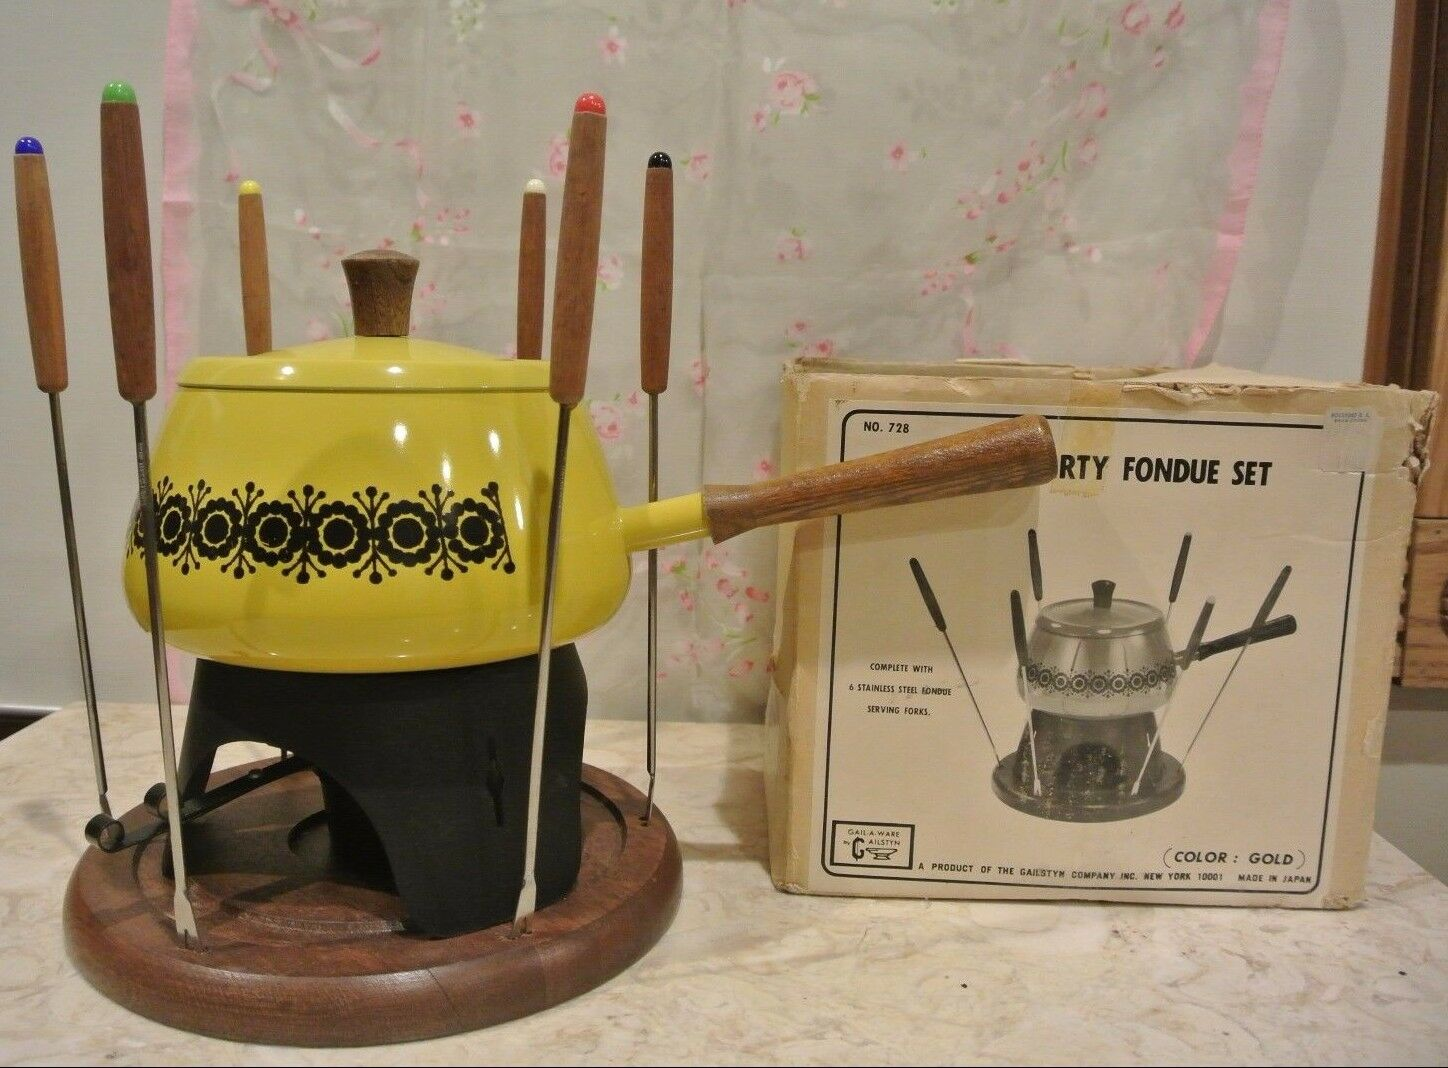 Gailstyn No 728 10 Pc Party Fondue Set  Made in Japan gold color with Wood Base